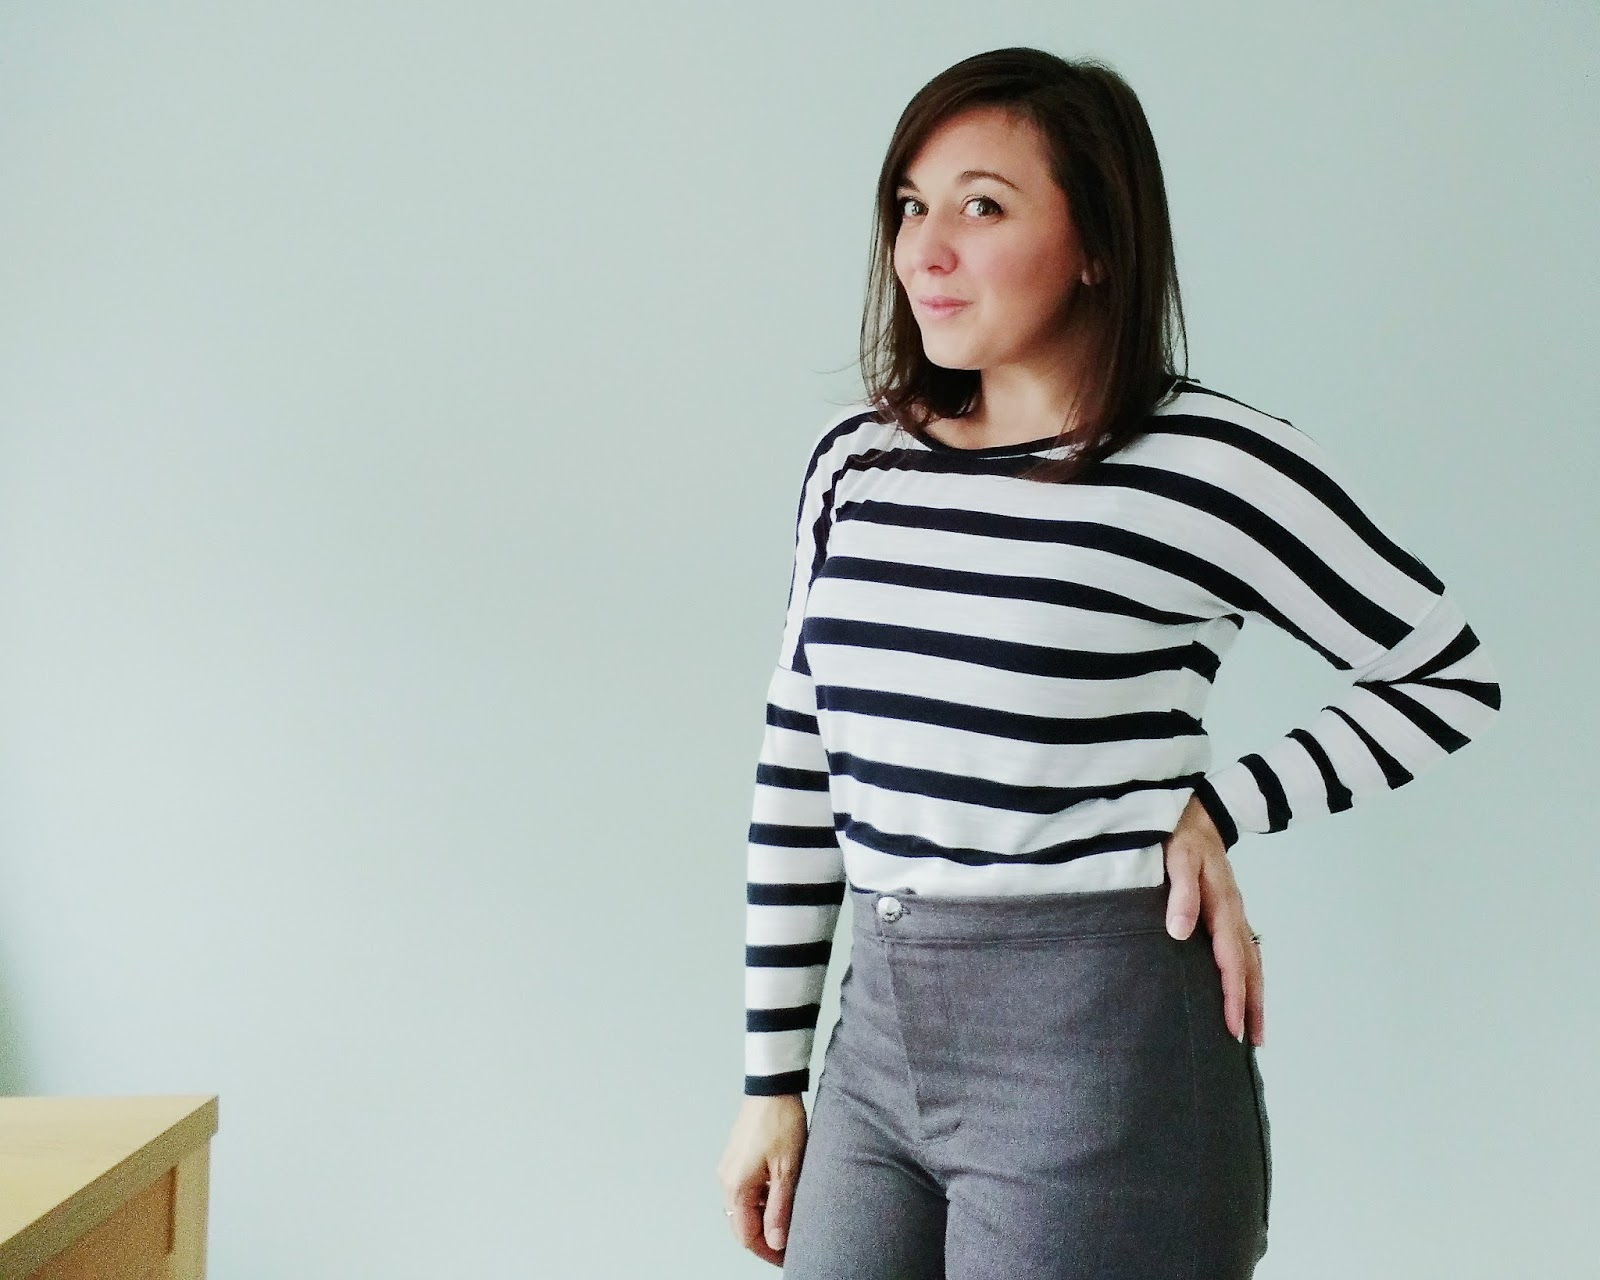 Sew Over It My Capsule Wardrobe City Break eBook: Mia Jeans pattern review